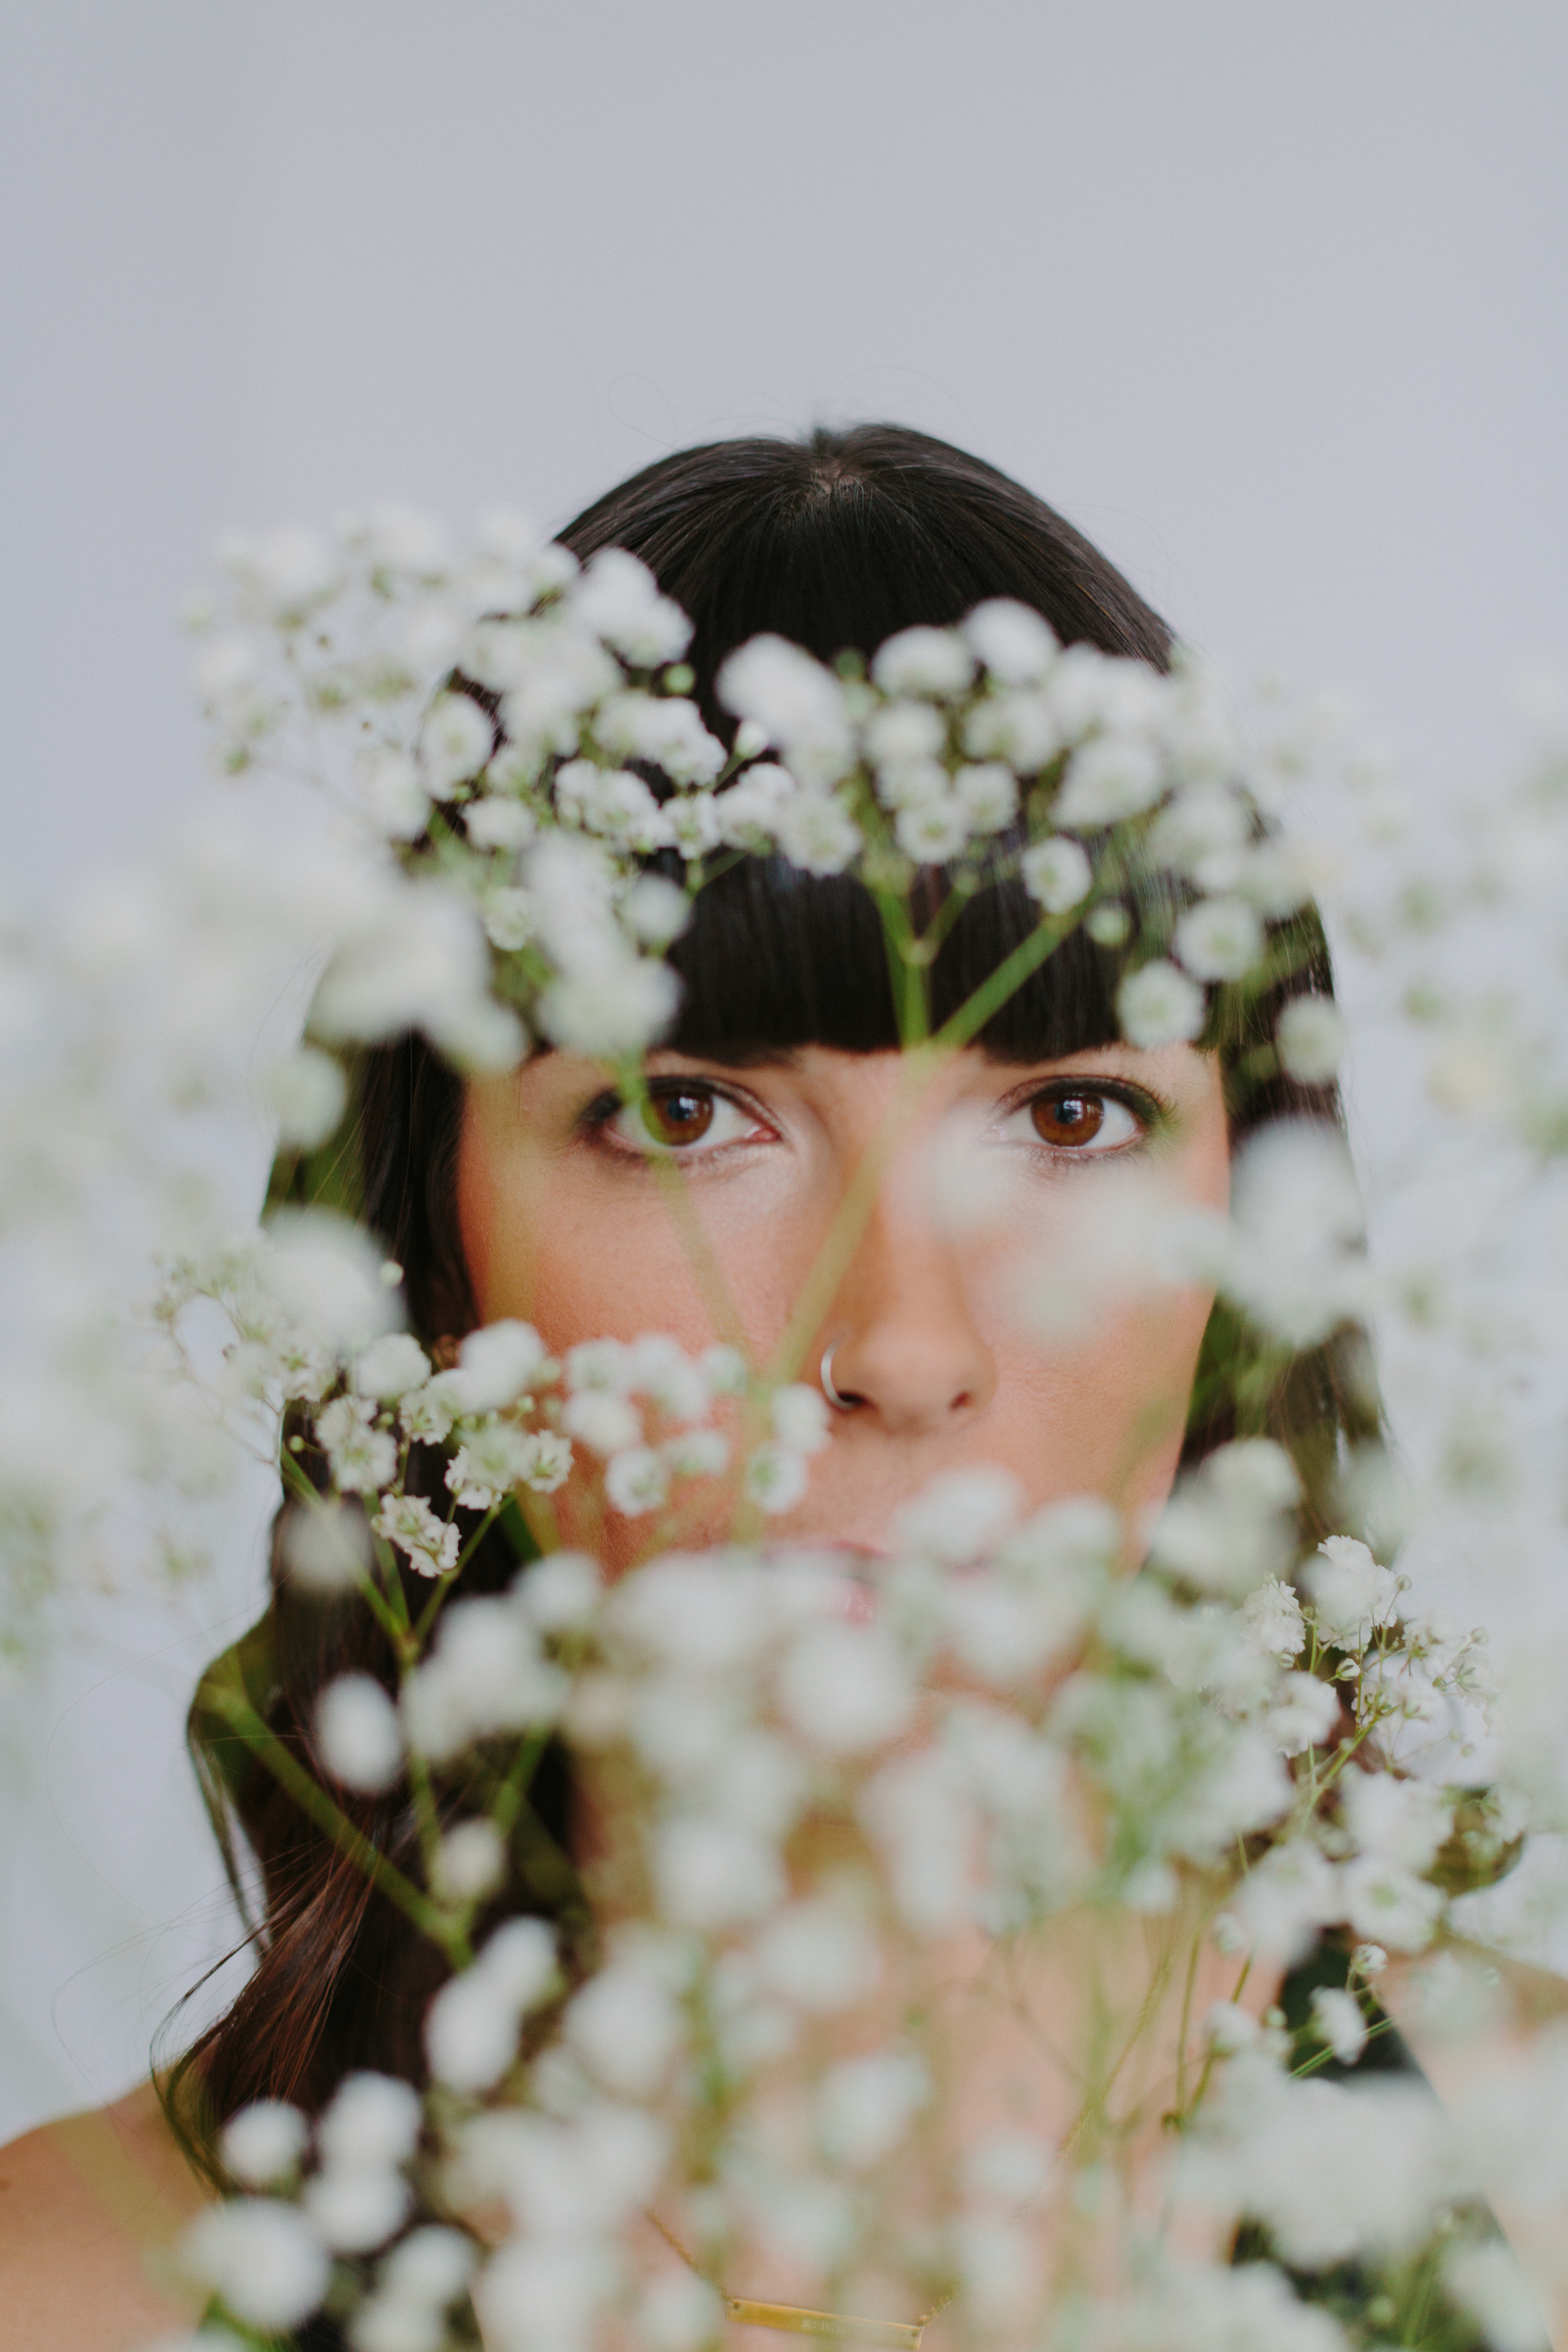 Ashely opted to include plants in her portrait session, by Alexa Mazzarello